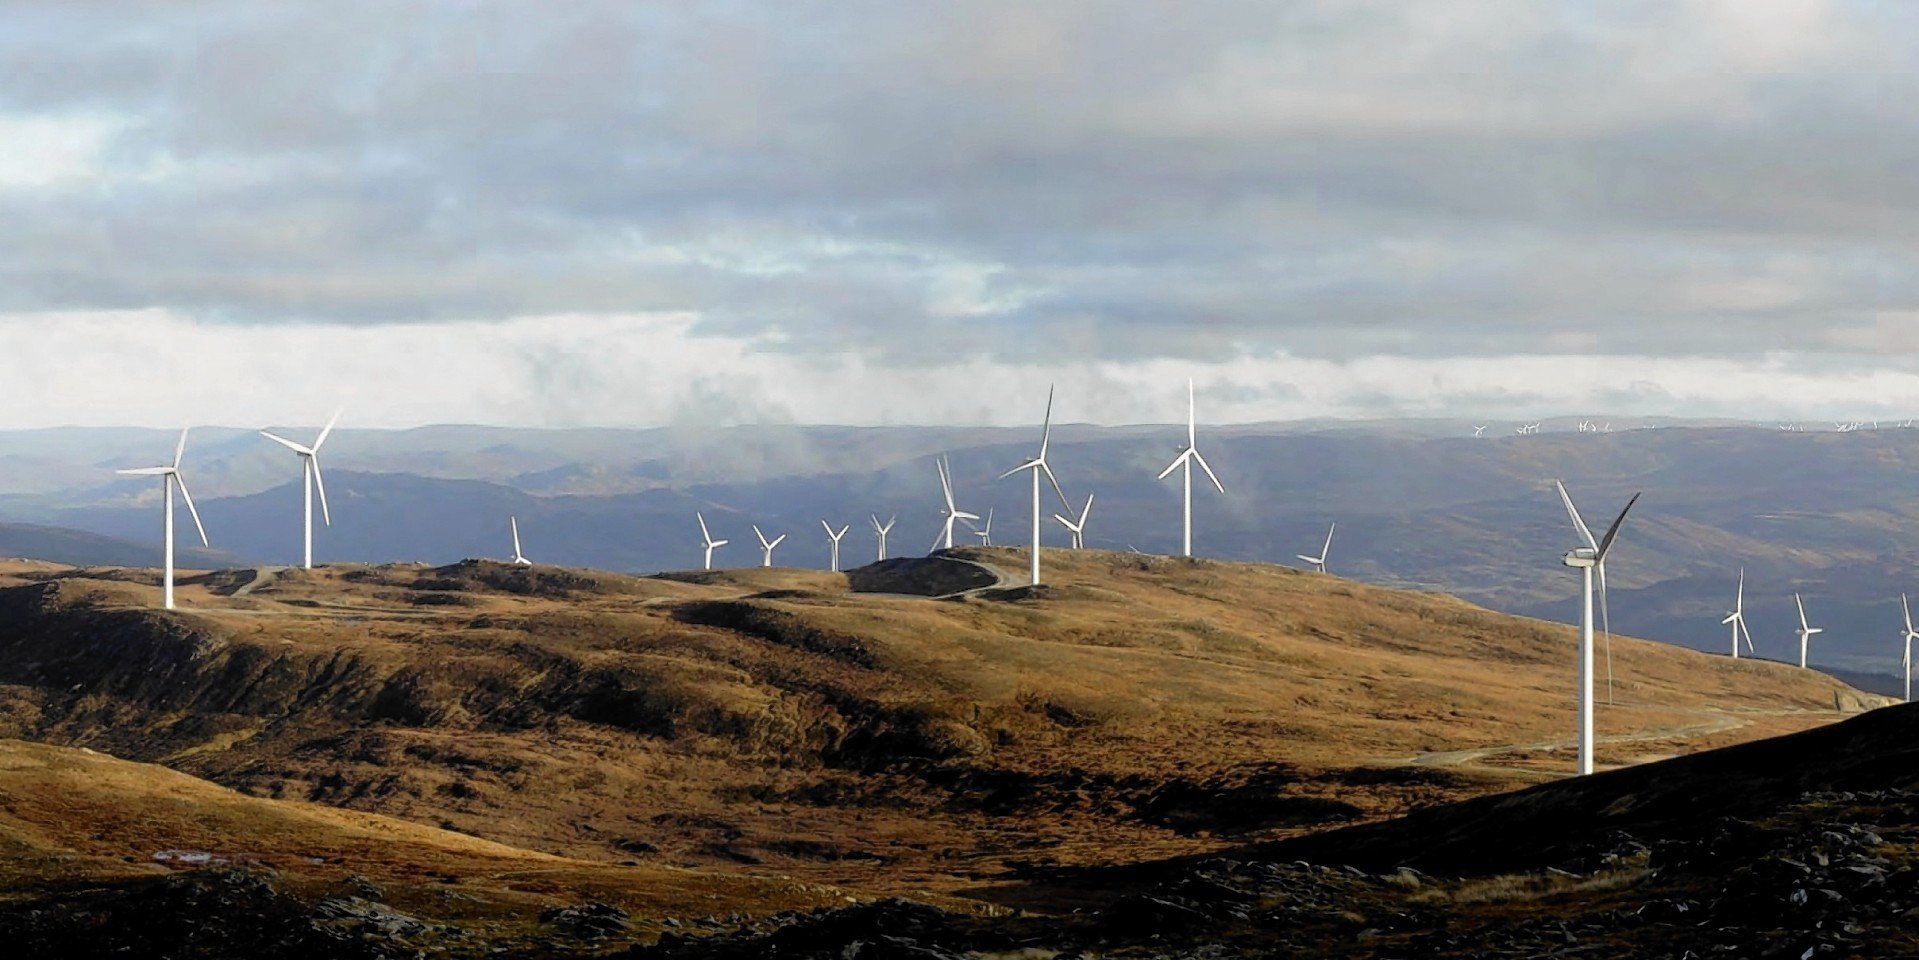 Stronelairg windfarm artist's impression from developers